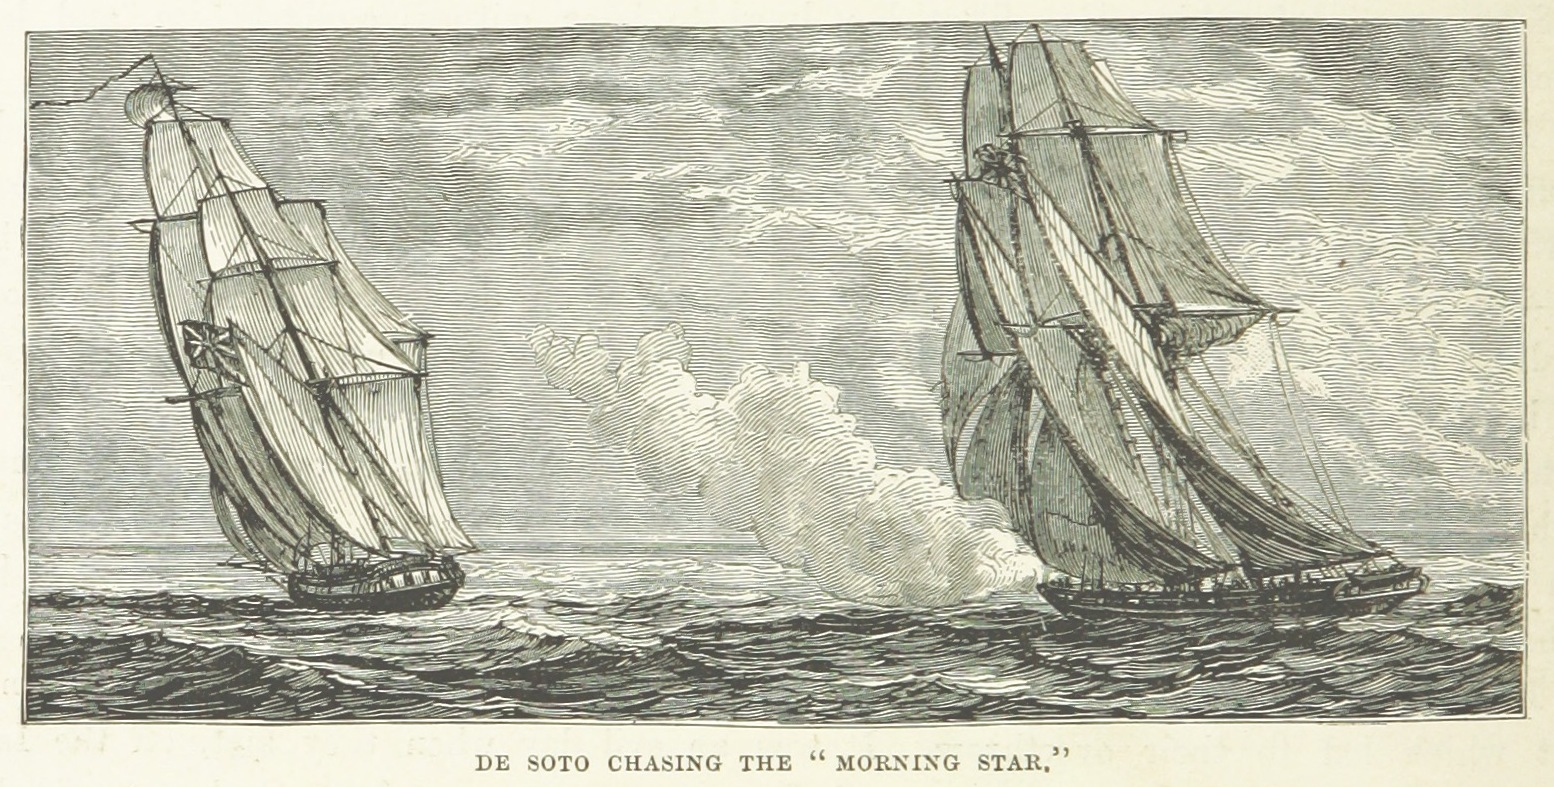 De Soto chasing the Morning Star